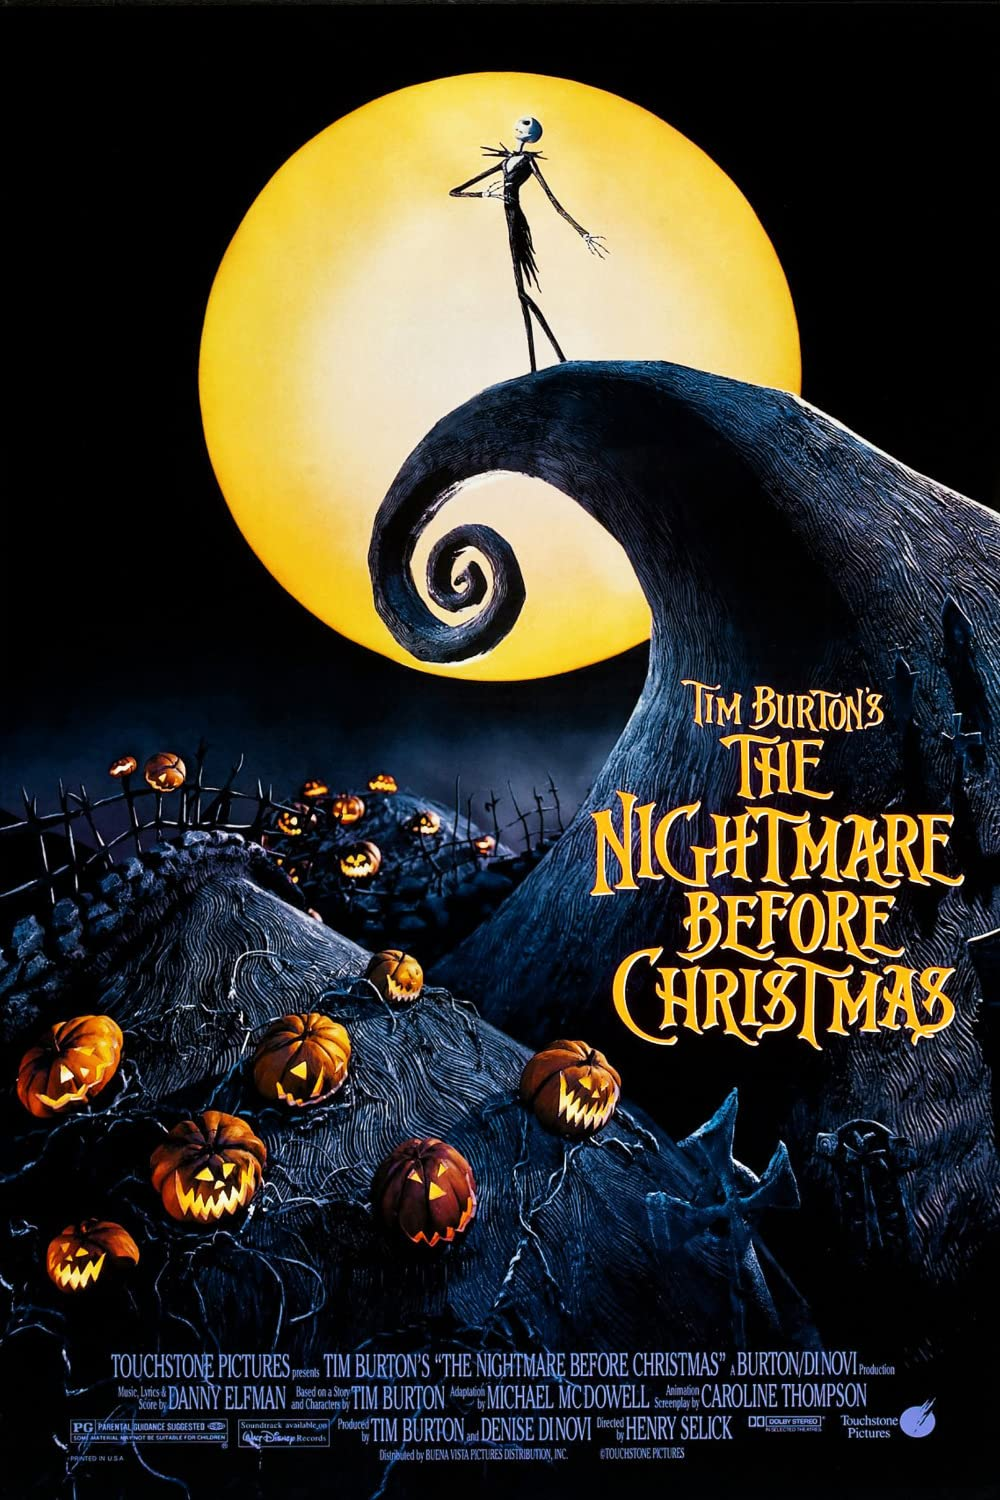 Jack the Pumpkin King stands on a hill in front of a large yellow full moon